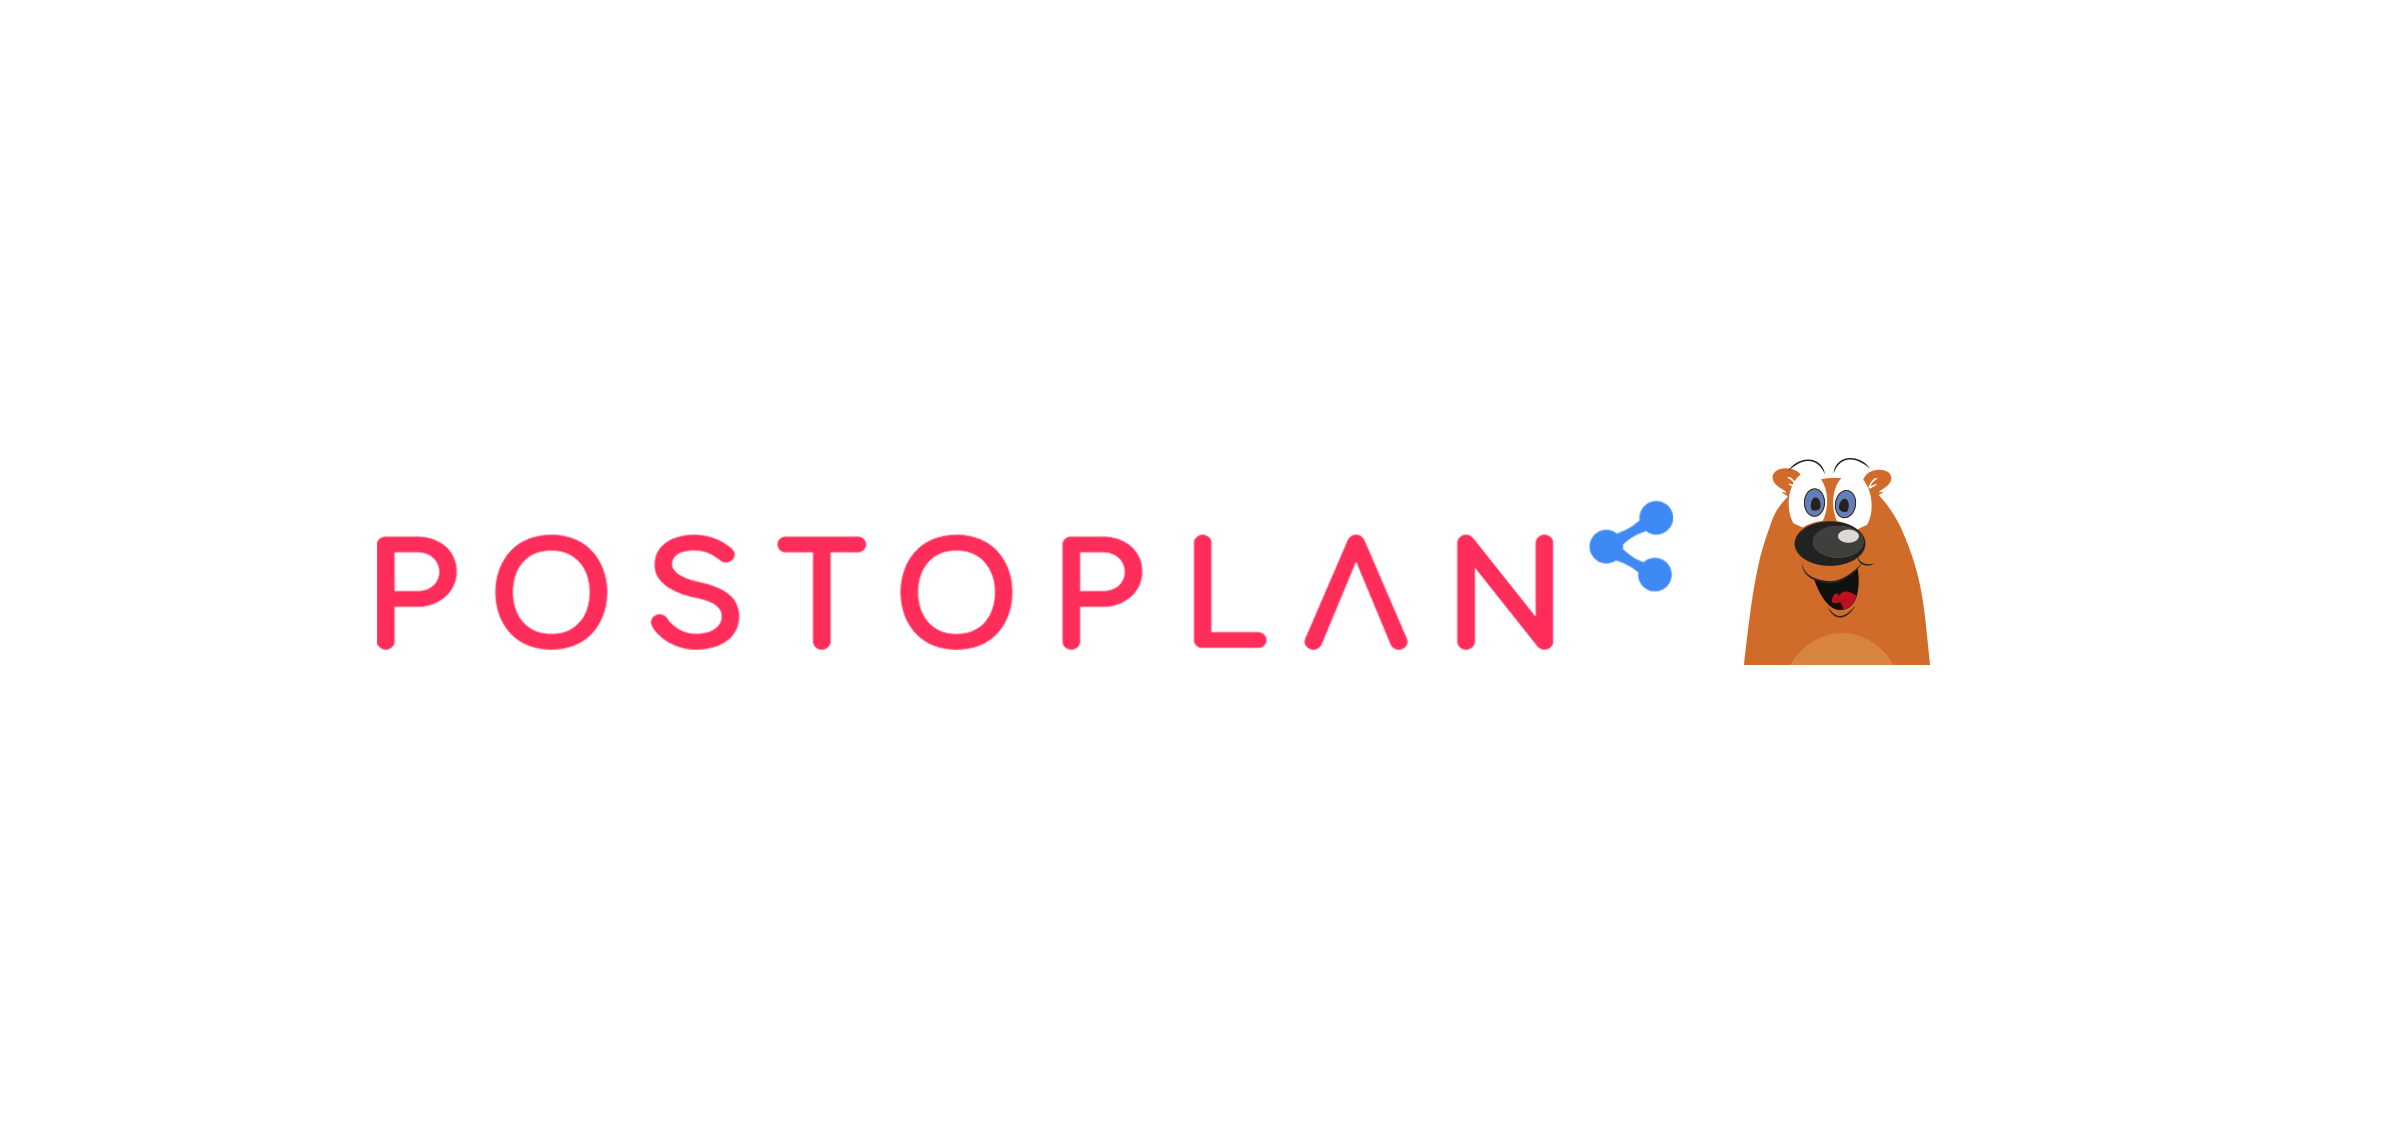 Postoplan - pricing, customer reviews, features, free plans, alternatives, comparisons, service costs.